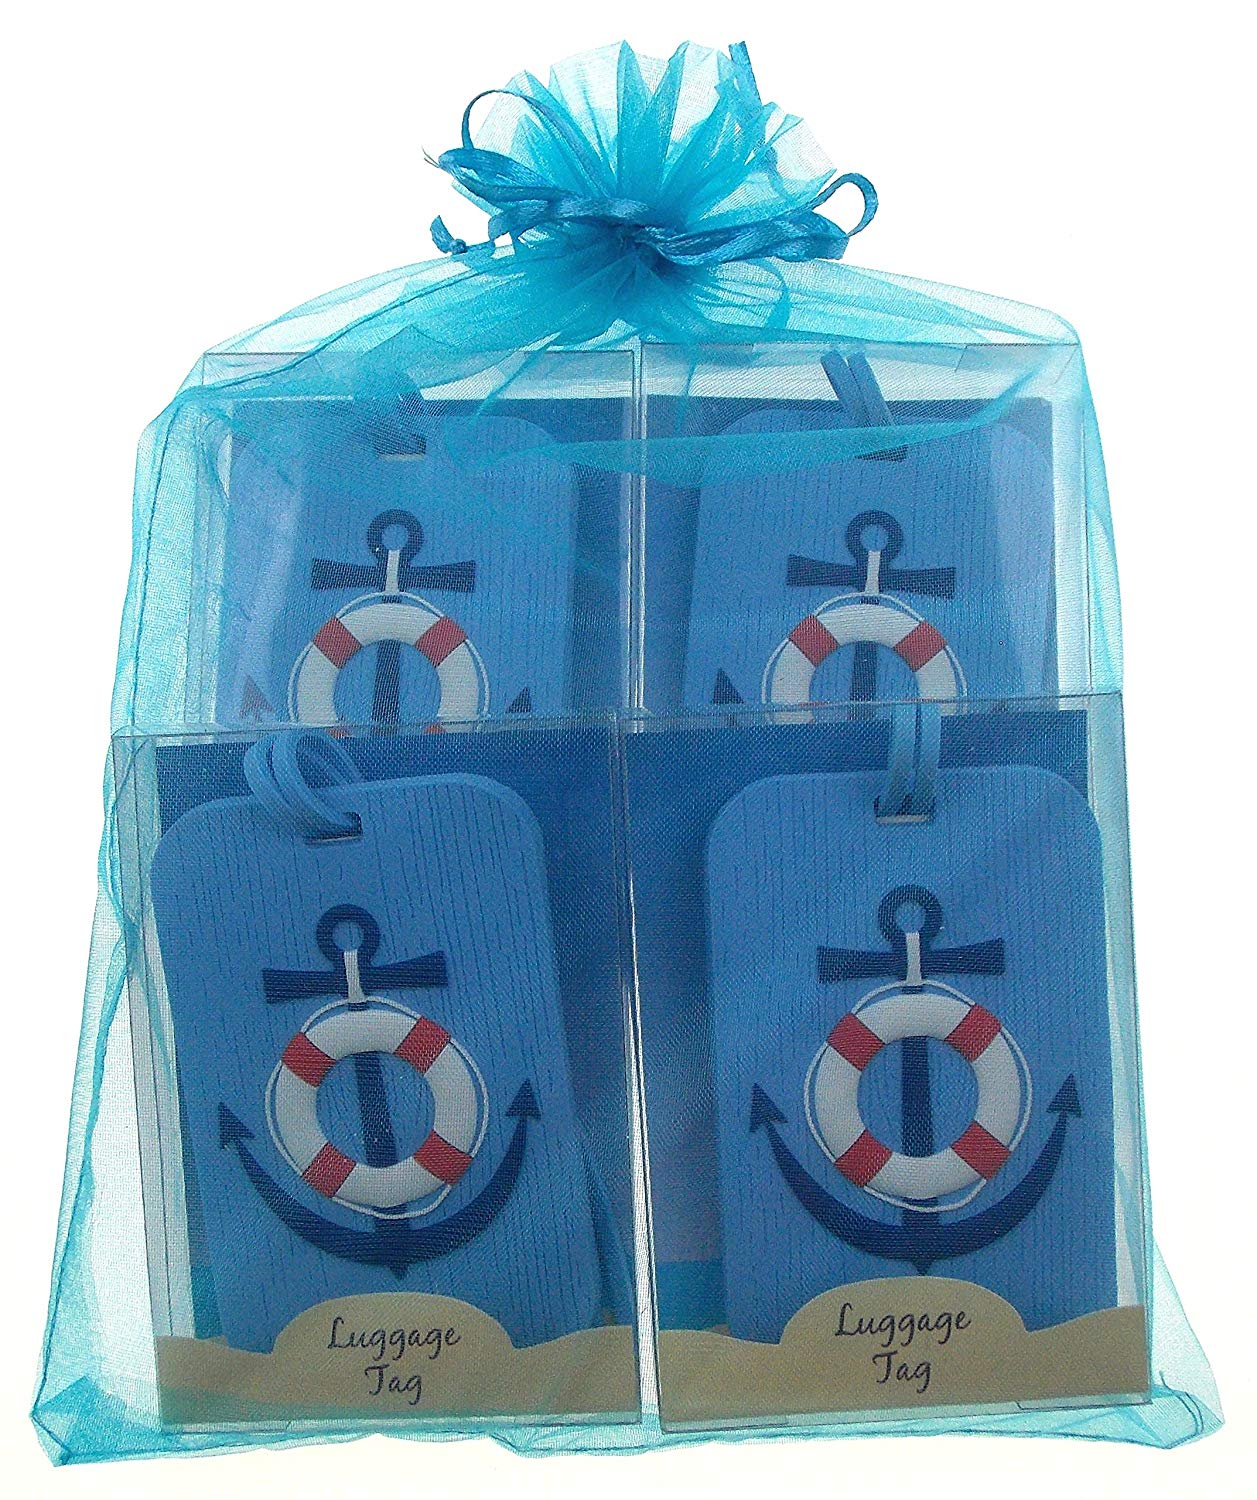 Light Blue Nautical Luggage Tags with Anchor & Life Saver Design Bundle of 4